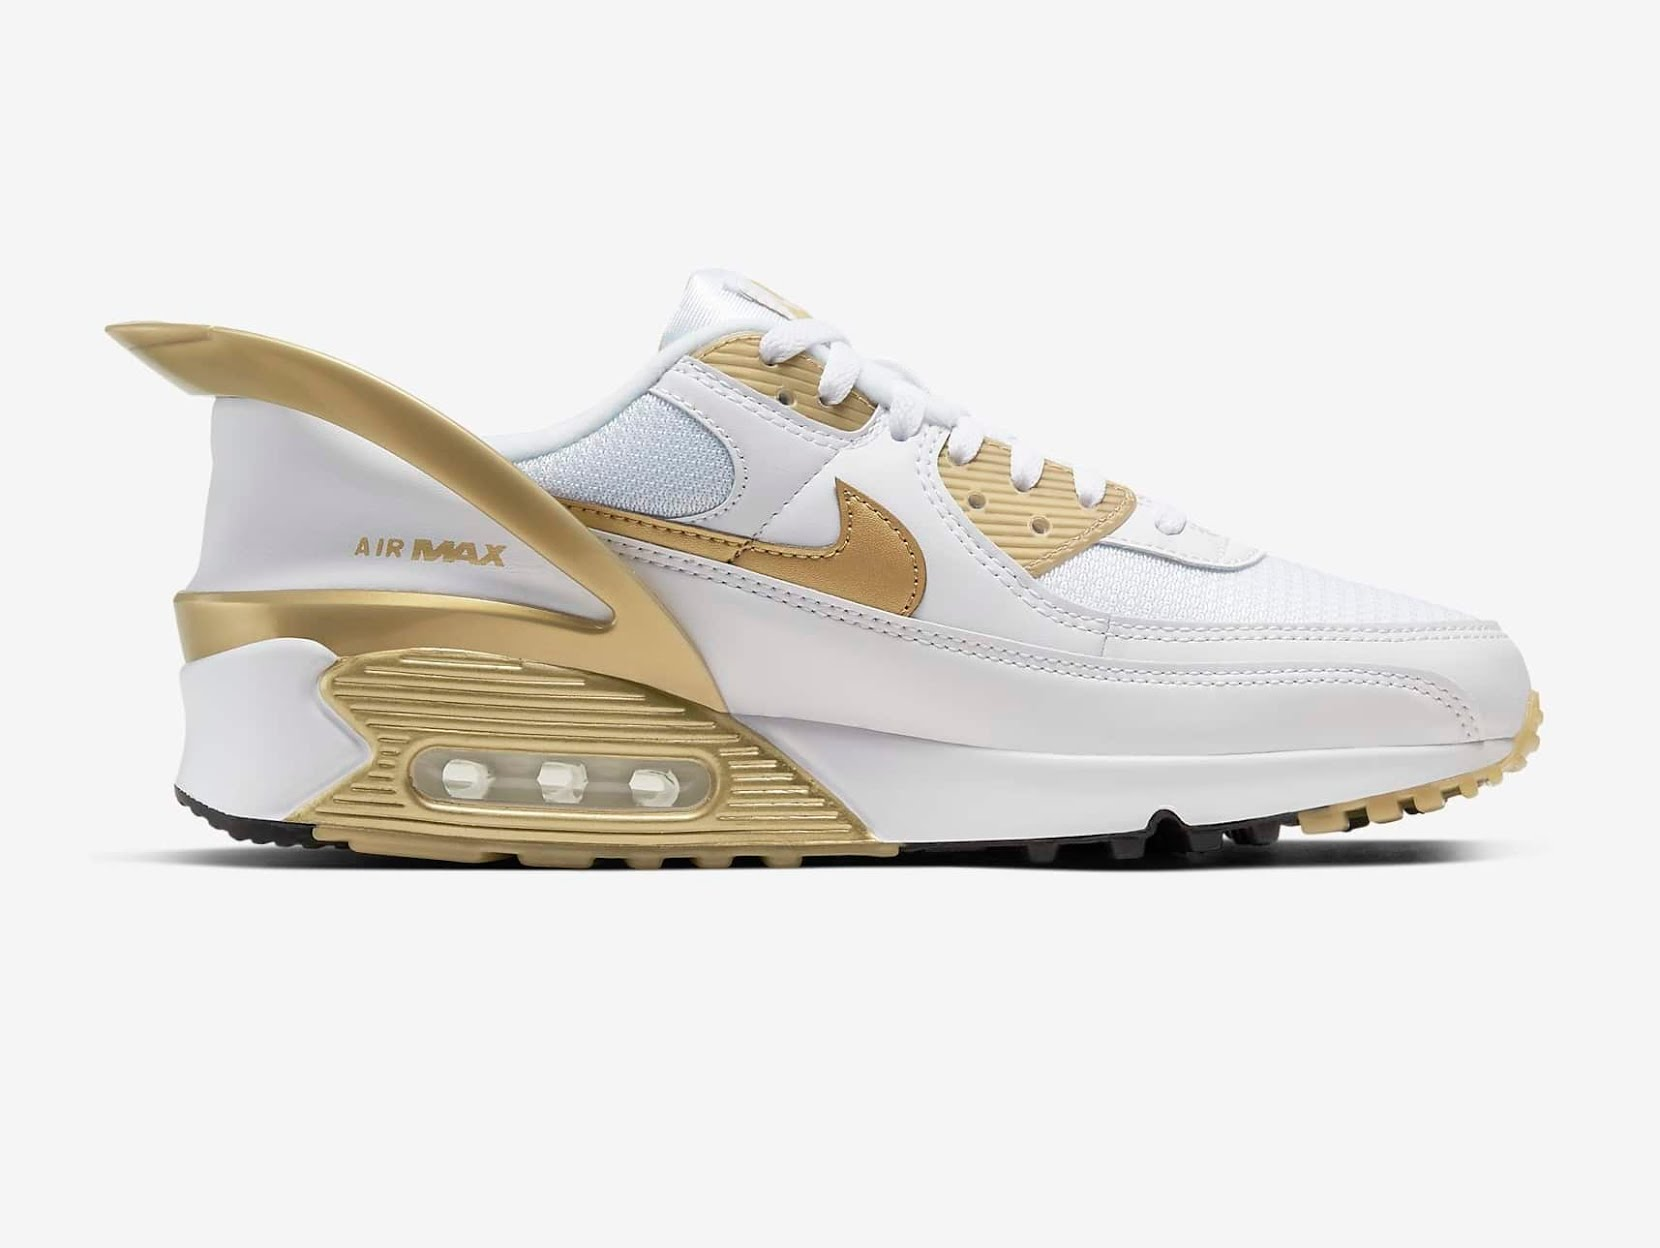 Soldes Nike - Nike Air Max 90 FlyEase